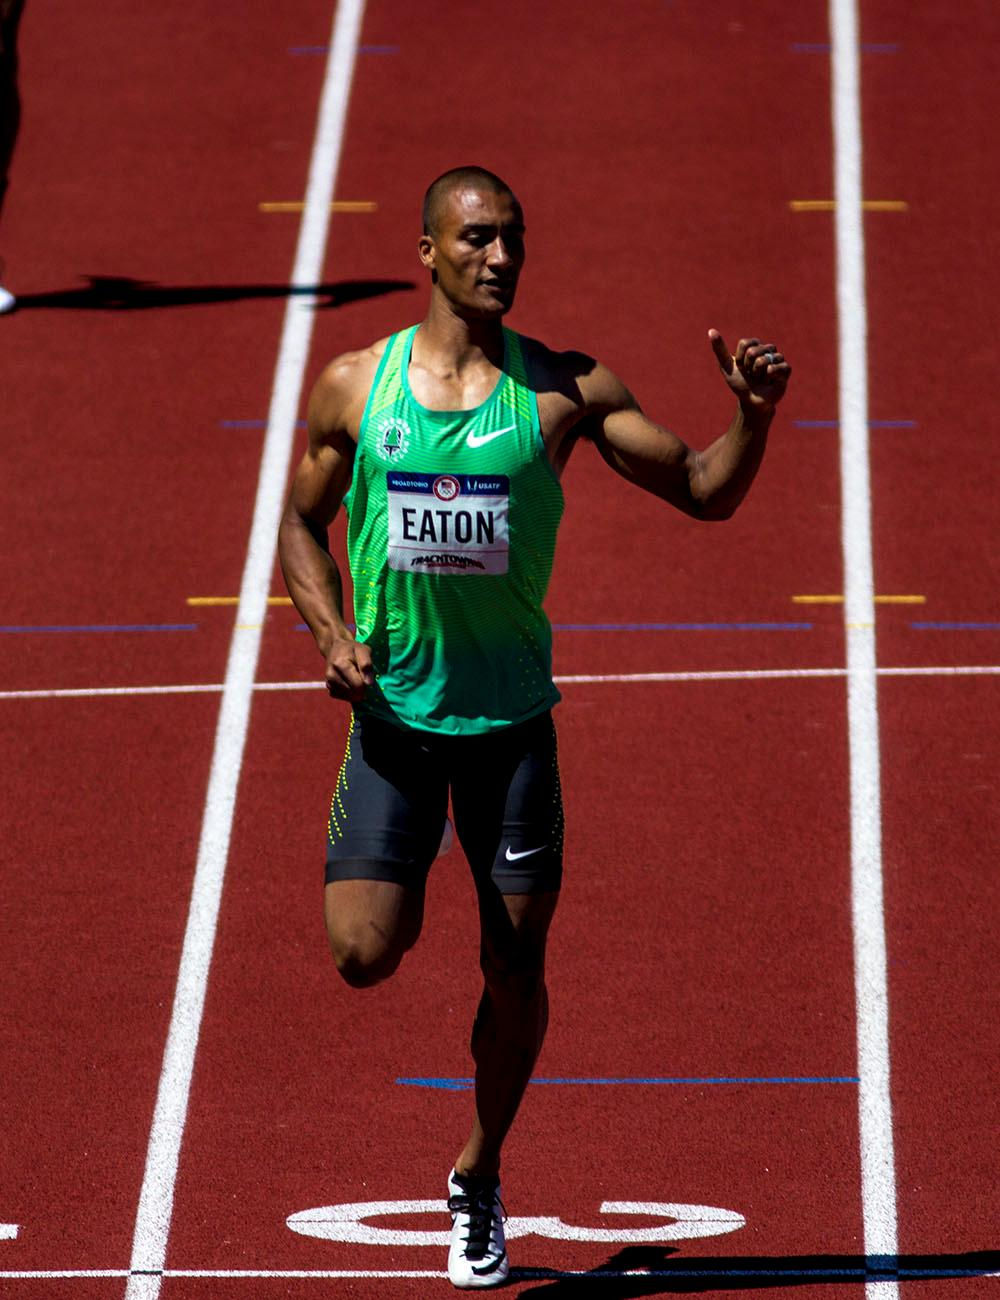 Nike Oregon Track Club's Ashton Eaton crosses the finish line of the Men�s 400m Dash as part of the Men�s Decathlon. He finished with a time of 46.30. He currently sits in first place after five events with a score of 4560. Day two of the U.S. Olympic trials track and field were held Saturday at Hayward Field in Eugene Ore. Events continue through July 10. (Photo by Amanda Butt)